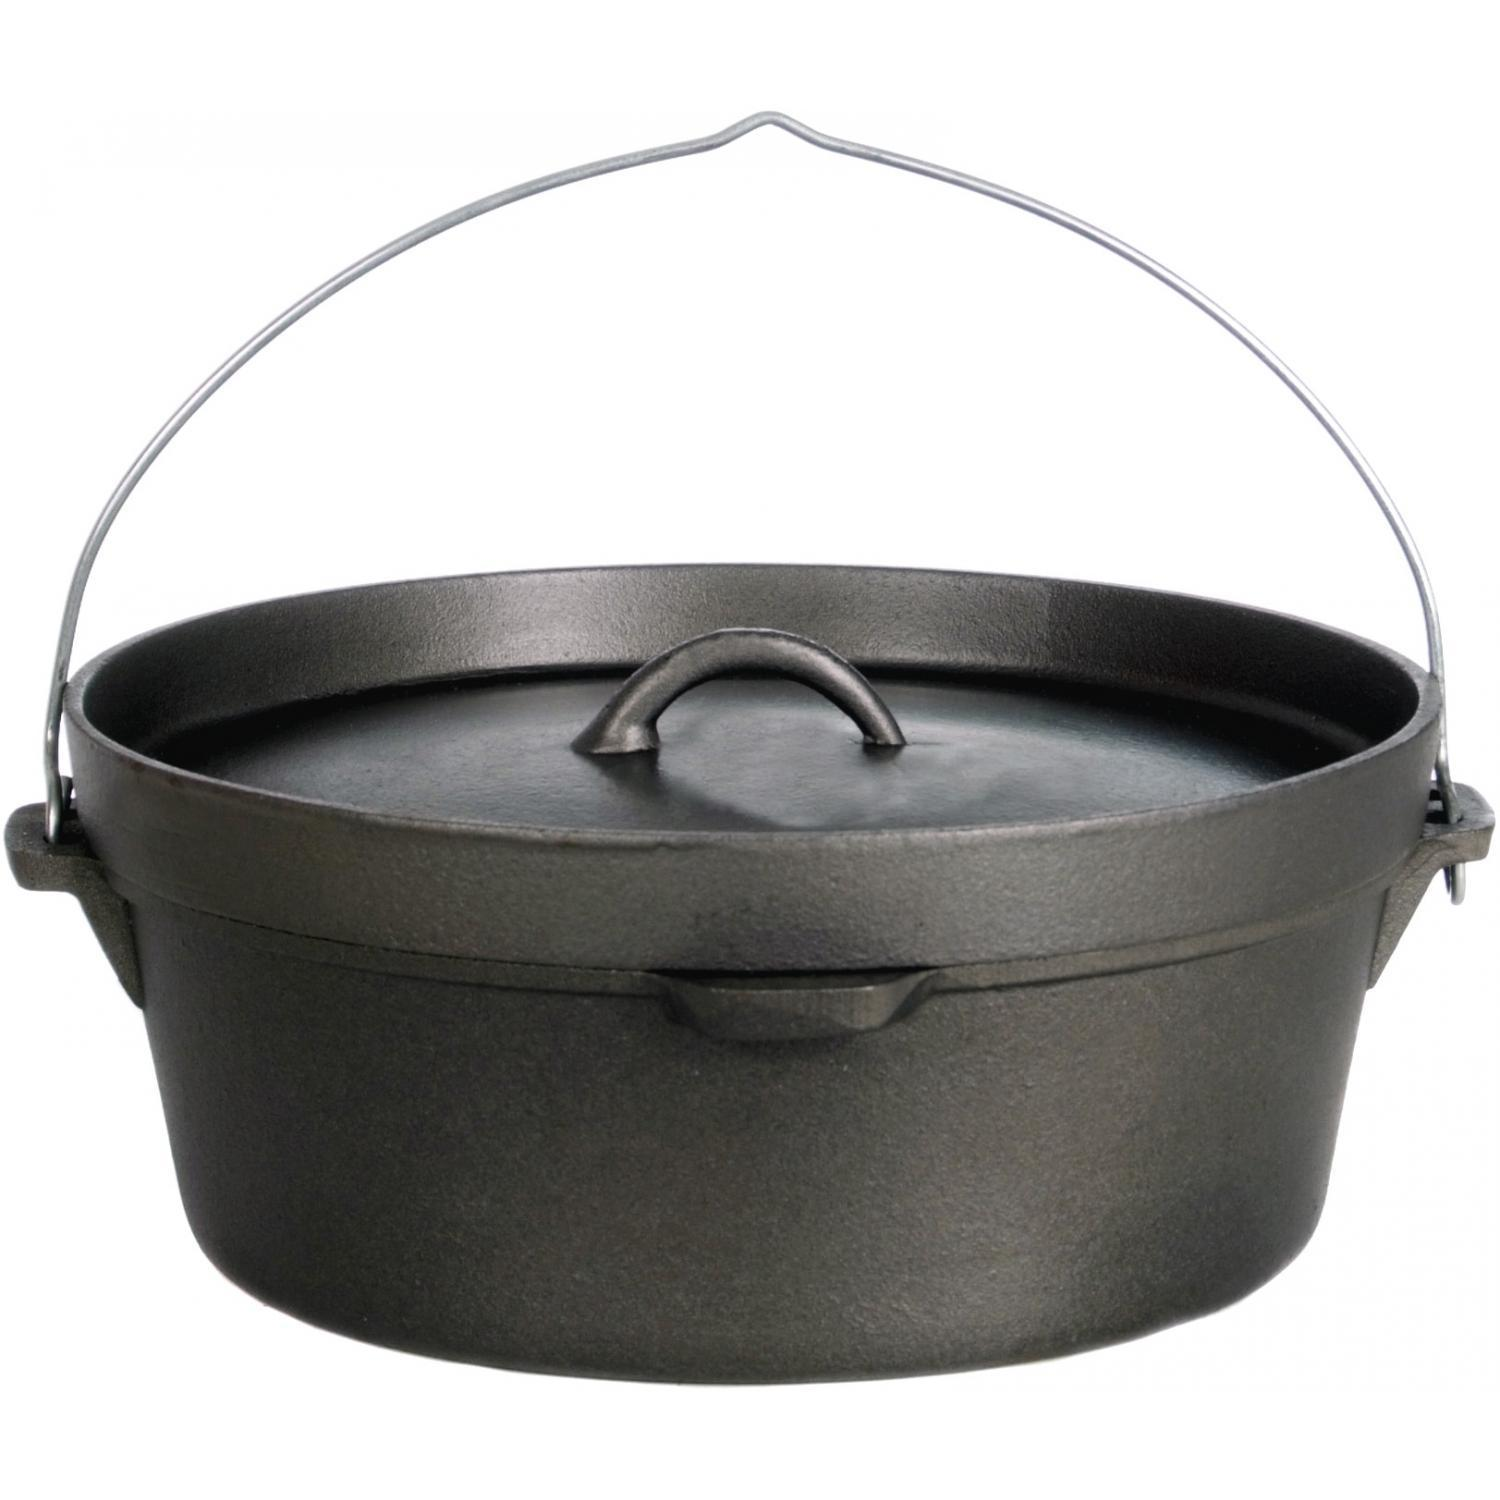 Cheap cajun cookware dutch ovens 6 quart seasoned cast iron dutch oven - Cajun Cookware Pots Without Legs 6 Quart Seasoned Cast Iron Camp Pot